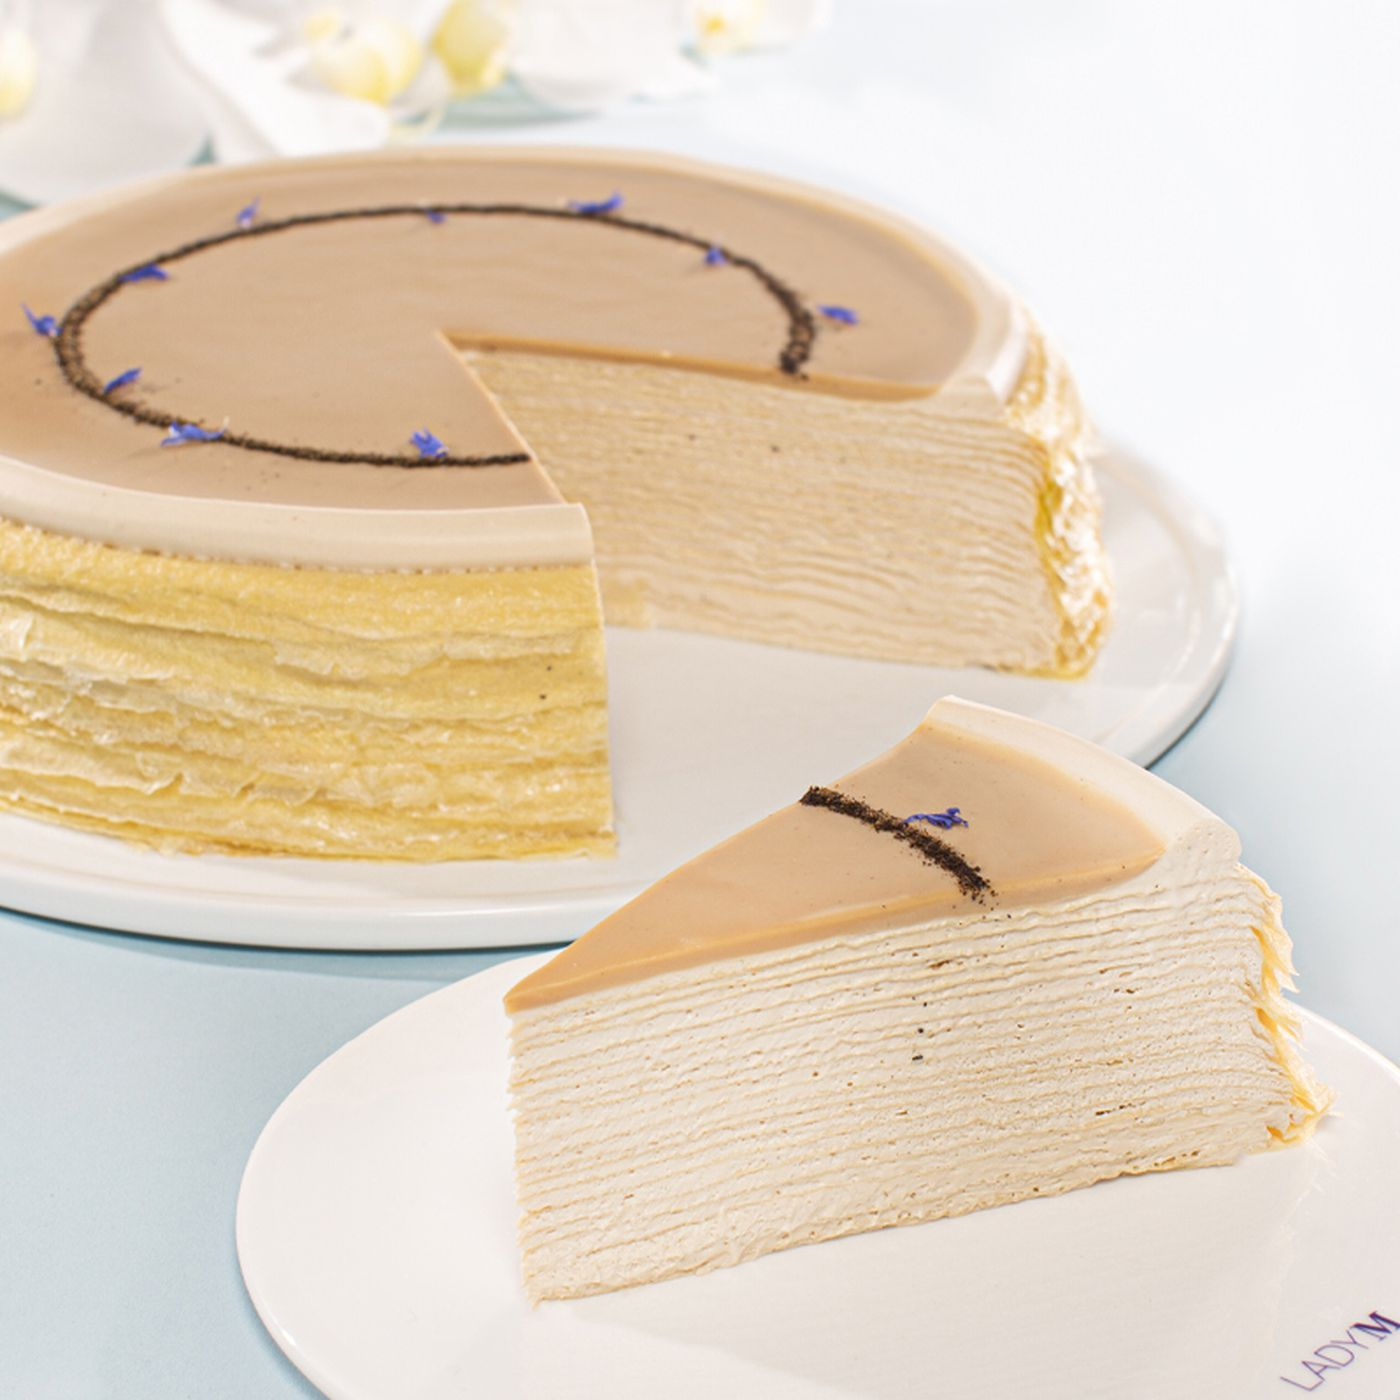 Awe Inspiring Nyc Bakery Lady Ms Famous Mille Crepes Pop Up In Dallas This Funny Birthday Cards Online Hetedamsfinfo